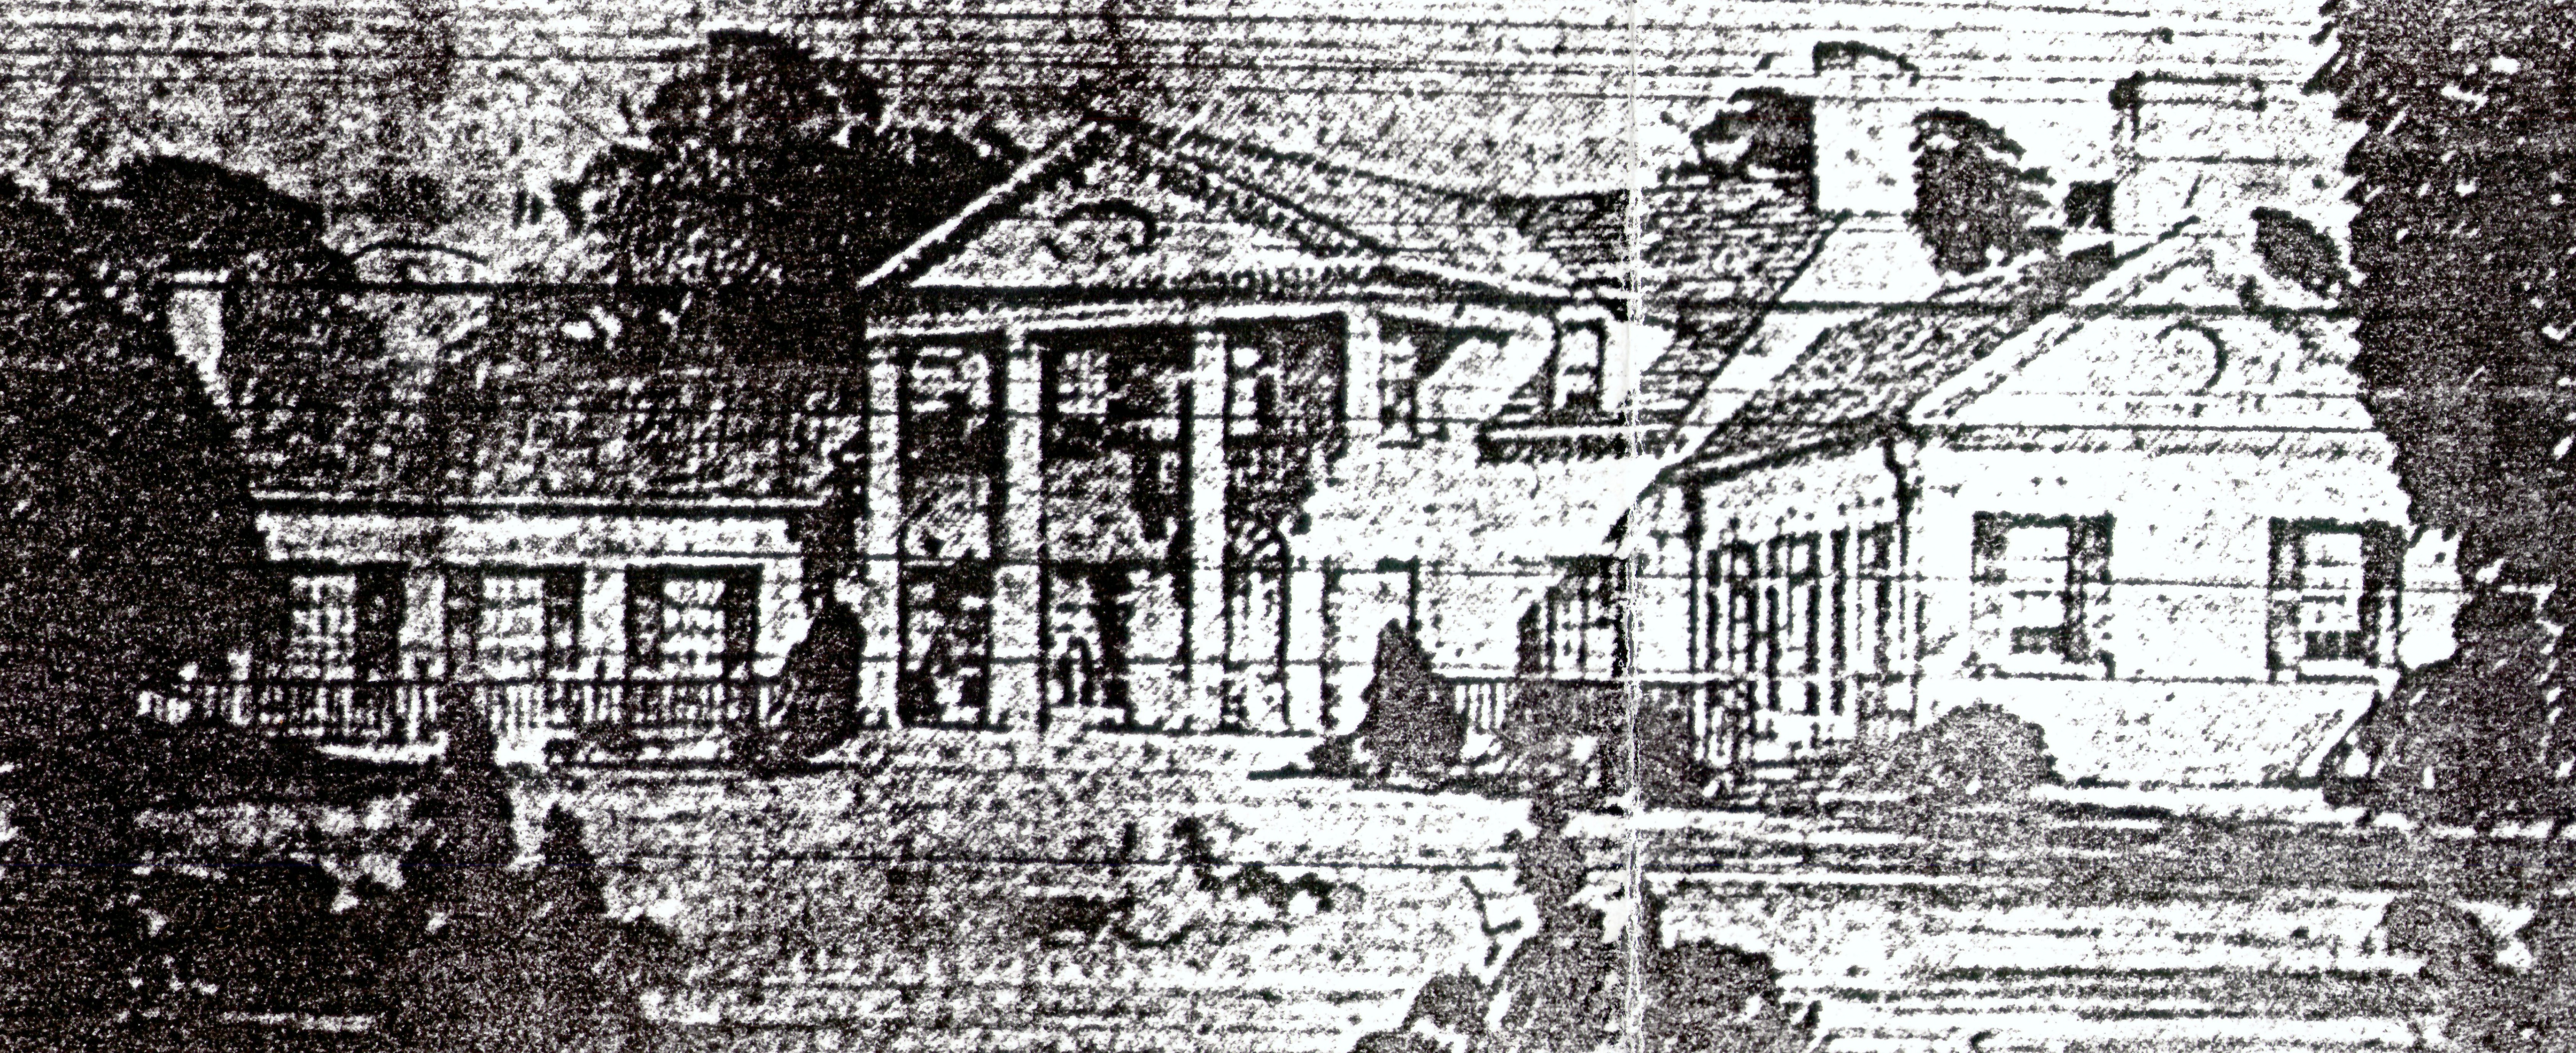 The clubhouse that was never built, designed by Willis Irvin, a prominent Augusta Architect. I apologize for the appalling quality of the image, which is a scan of a photocopy of a microfilm print of a newspaper photograph of a drawing.